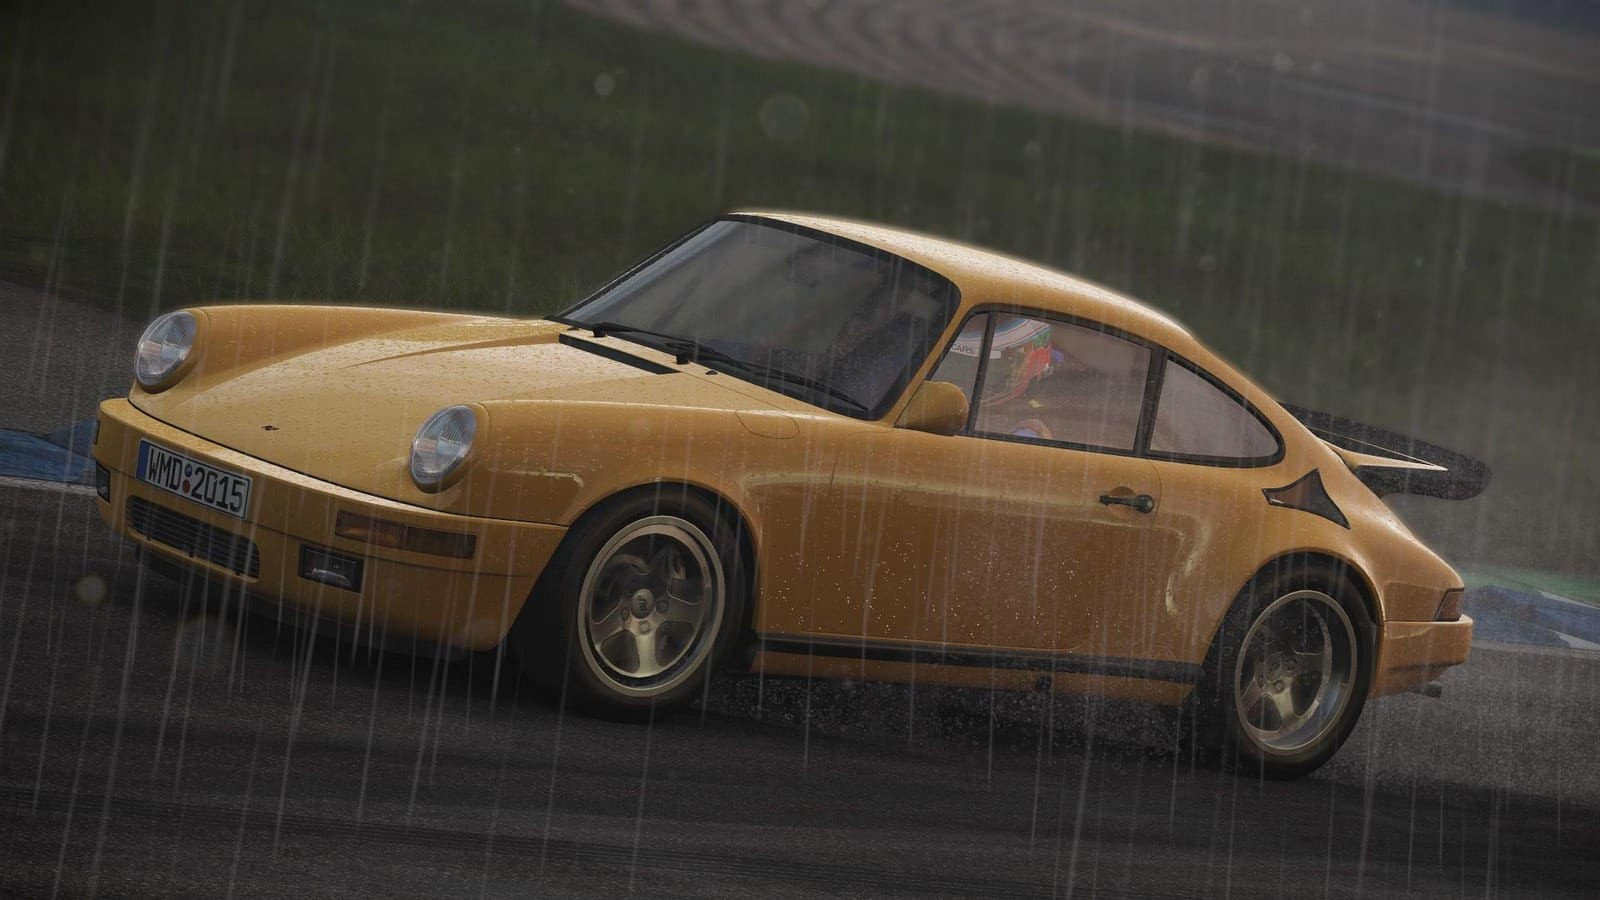 project cars 2 built by drivers web series showcases porsche passion. Black Bedroom Furniture Sets. Home Design Ideas